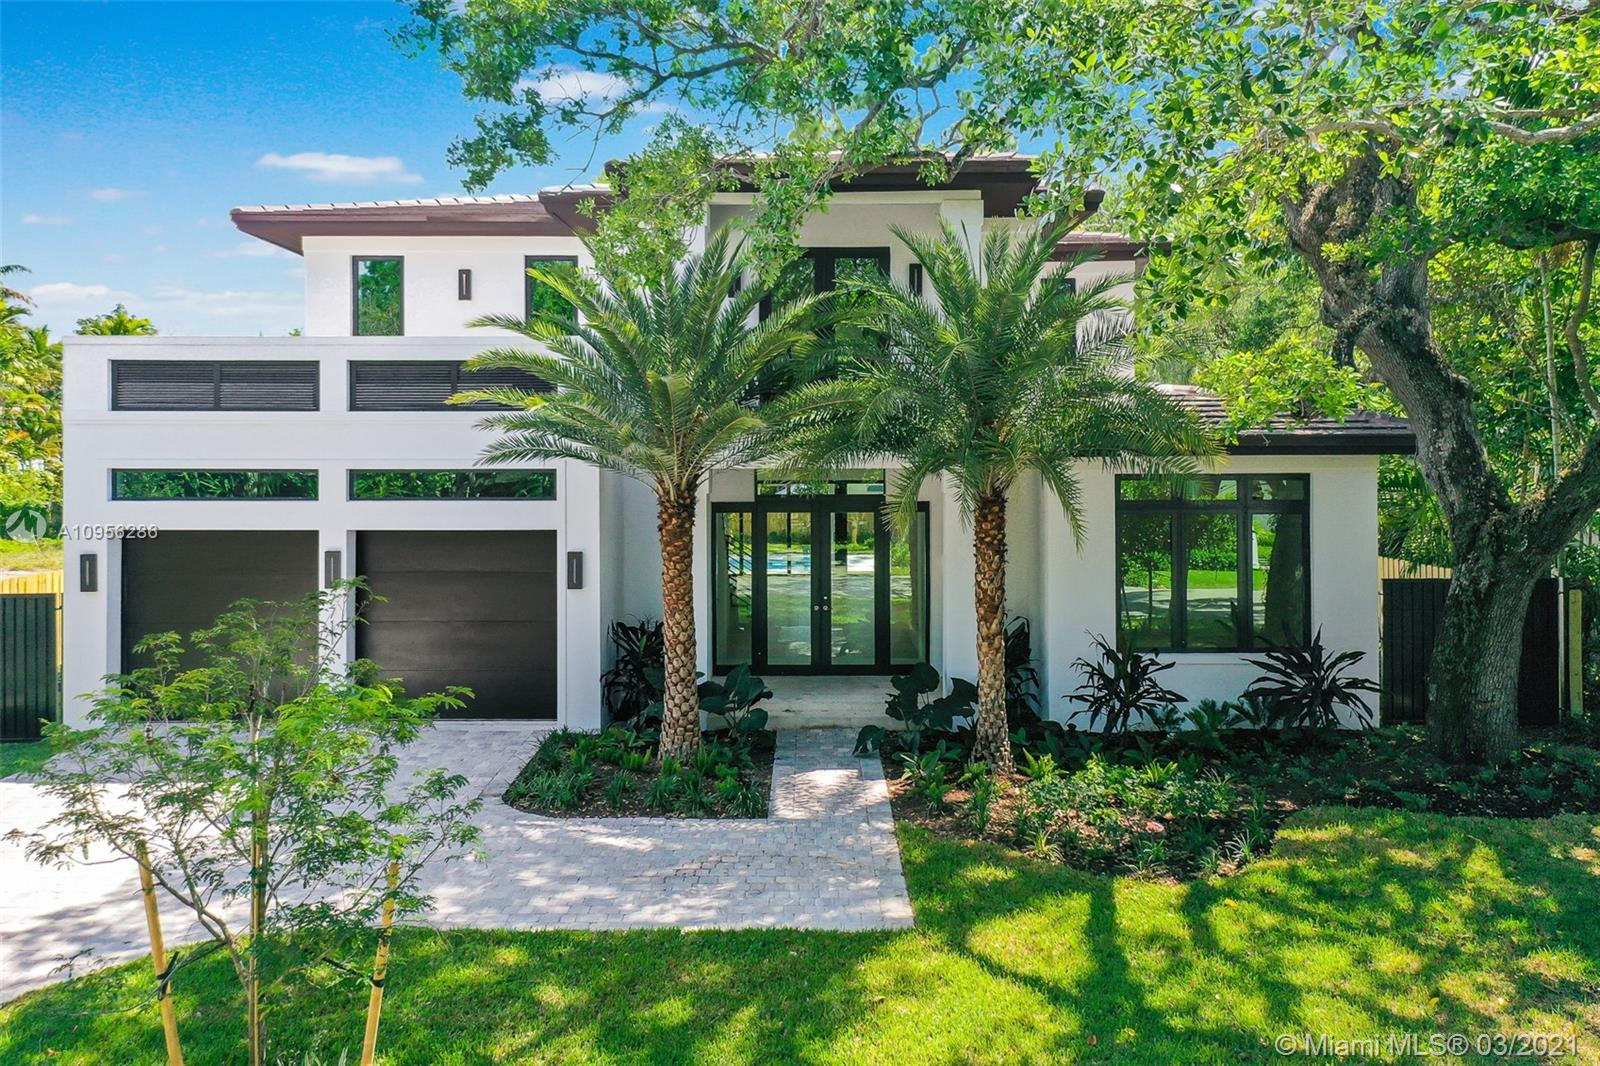 """~ FANTASTIC NEW CONSTRUCTION """"MIAMI TRANSITIONAL"""" HOME TO BE COMPLETED FEBRUARY 2021 ~ 5 BEDROOMS / 6 BATHROOMS / 2 CAR GARAGE / POOL / 10,080 SF LOT ~ ENJOY THE OPEN CONCEPT & PROUDLY ENTERTAIN SEAMLESSLY INDOOR TO OUTDOOR ~ CUSTOM ITALKRAFT KITCHEN WITH SUBZERO & WOLF APPLIANCES INCLUDING GAS COOKTOP ~ 24 X 48 PORCELAIN DOWNSTAIRS / ASPEN OAK WOOD FLOORS UPSTAIRS ~ DOWNSTAIRS HIGHLIGHTS FULL GUEST SUITE PLUS FULL CABANA BATH ~ UPSTAIRS BOASTS THE MASTER SUITE PLUS 3 CHILDREN'S BEDROOMS WITH EN SUITE BATHROOMS ~ ITALKRAFT CABINETRY THROUGHOUT THE HOME ~ GENEROUS OUTDOOR TERRACE OVERLOOKING THE POOL & BACKYARD ~ HOME EQUIPPED WITH SOLAR PANELS & CGI IMPACT GLASS ~ EASY WALK TO SOUTH MIAMI & SOUTH GABLES RESTAURANTS & SHOPS ~ CLOSE PROXIMITY TO EVERYTHING THAT MATTERS!!! ~"""